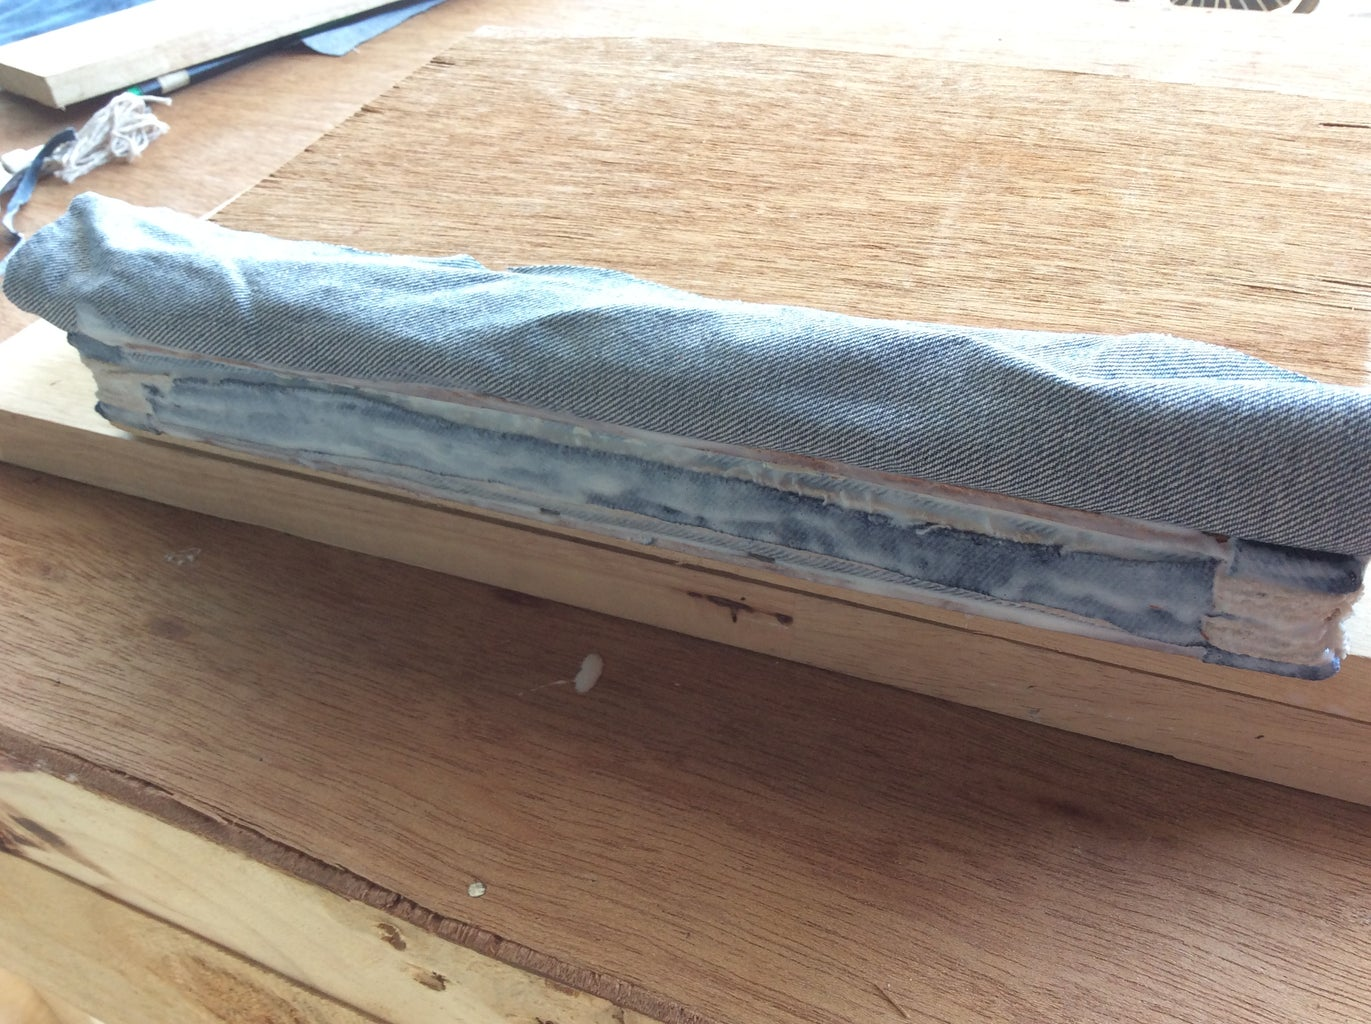 Gluing Down the Outer Spine